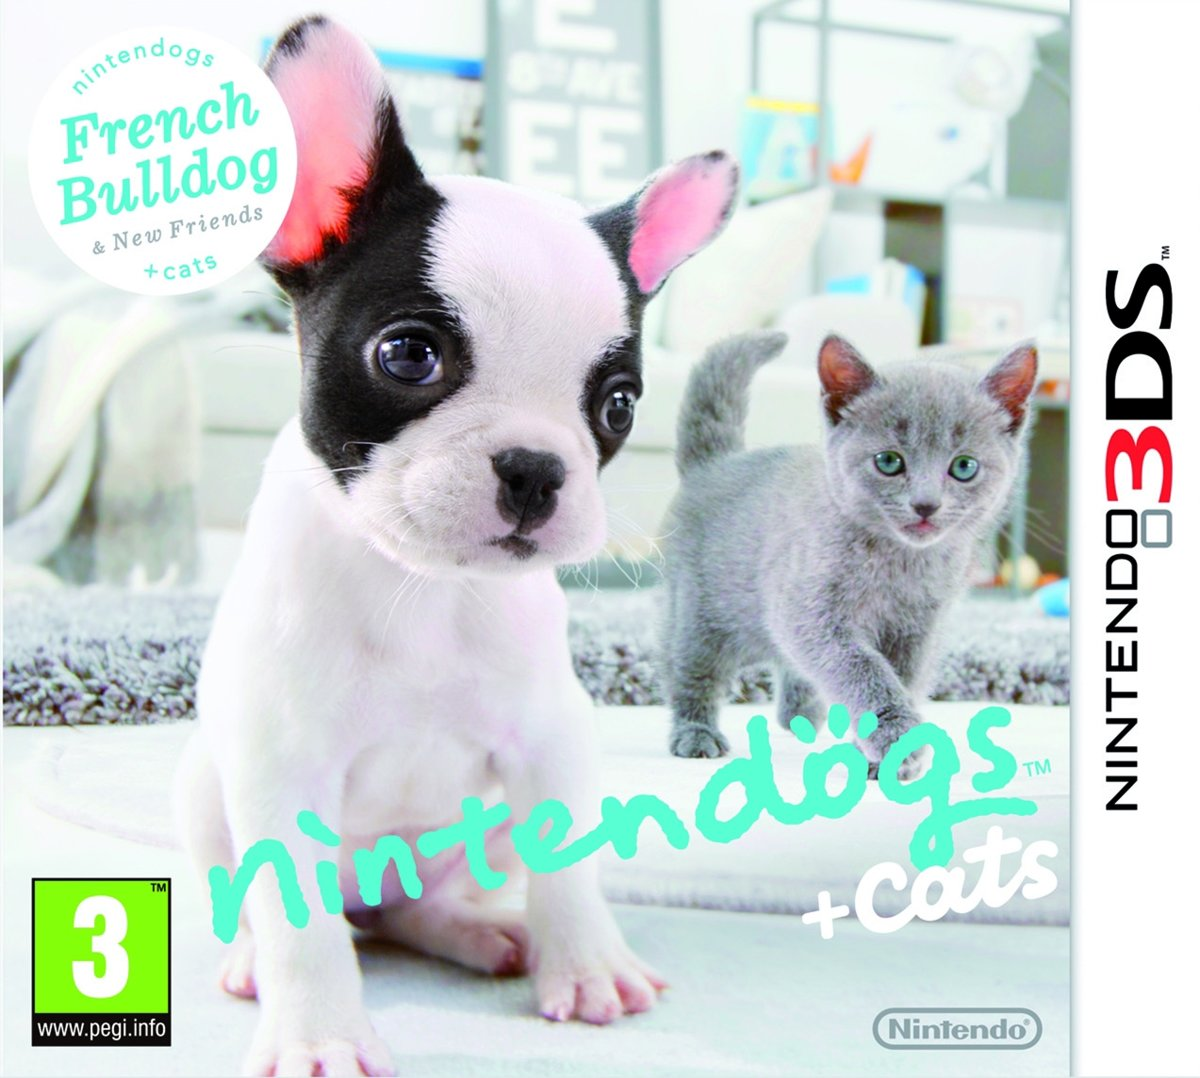 DS TÉLÉCHARGER NINTENDOGS CATS